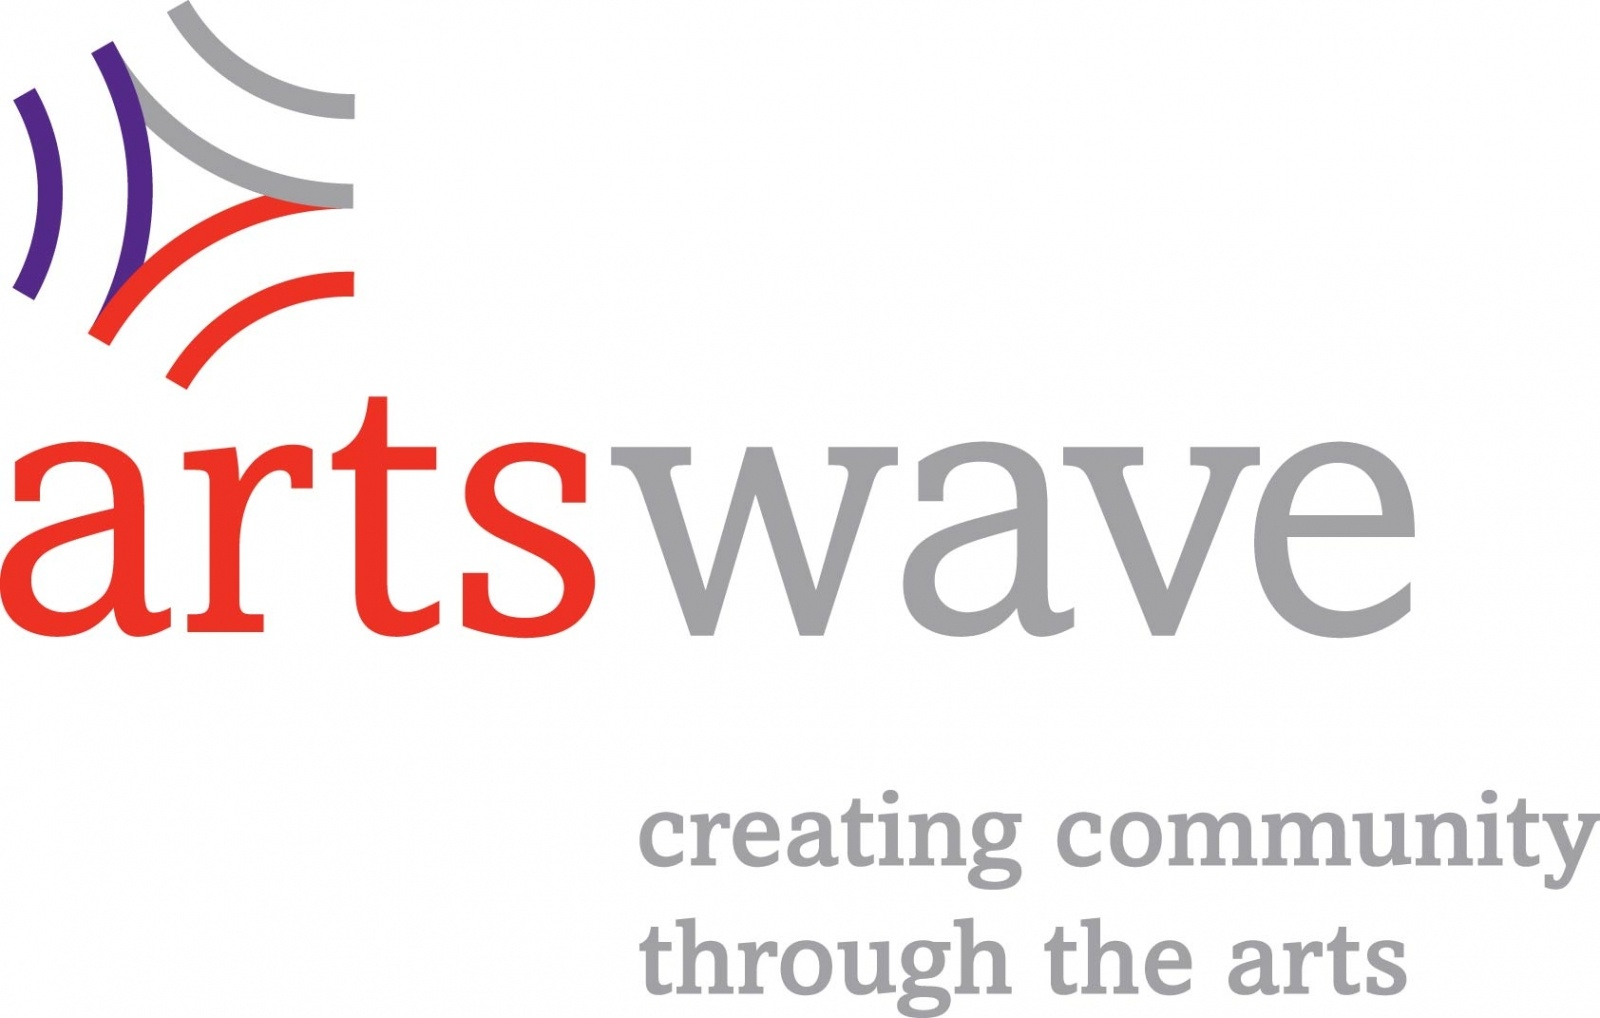 artswave_brandmark_no_rings_with_tagline.jpg